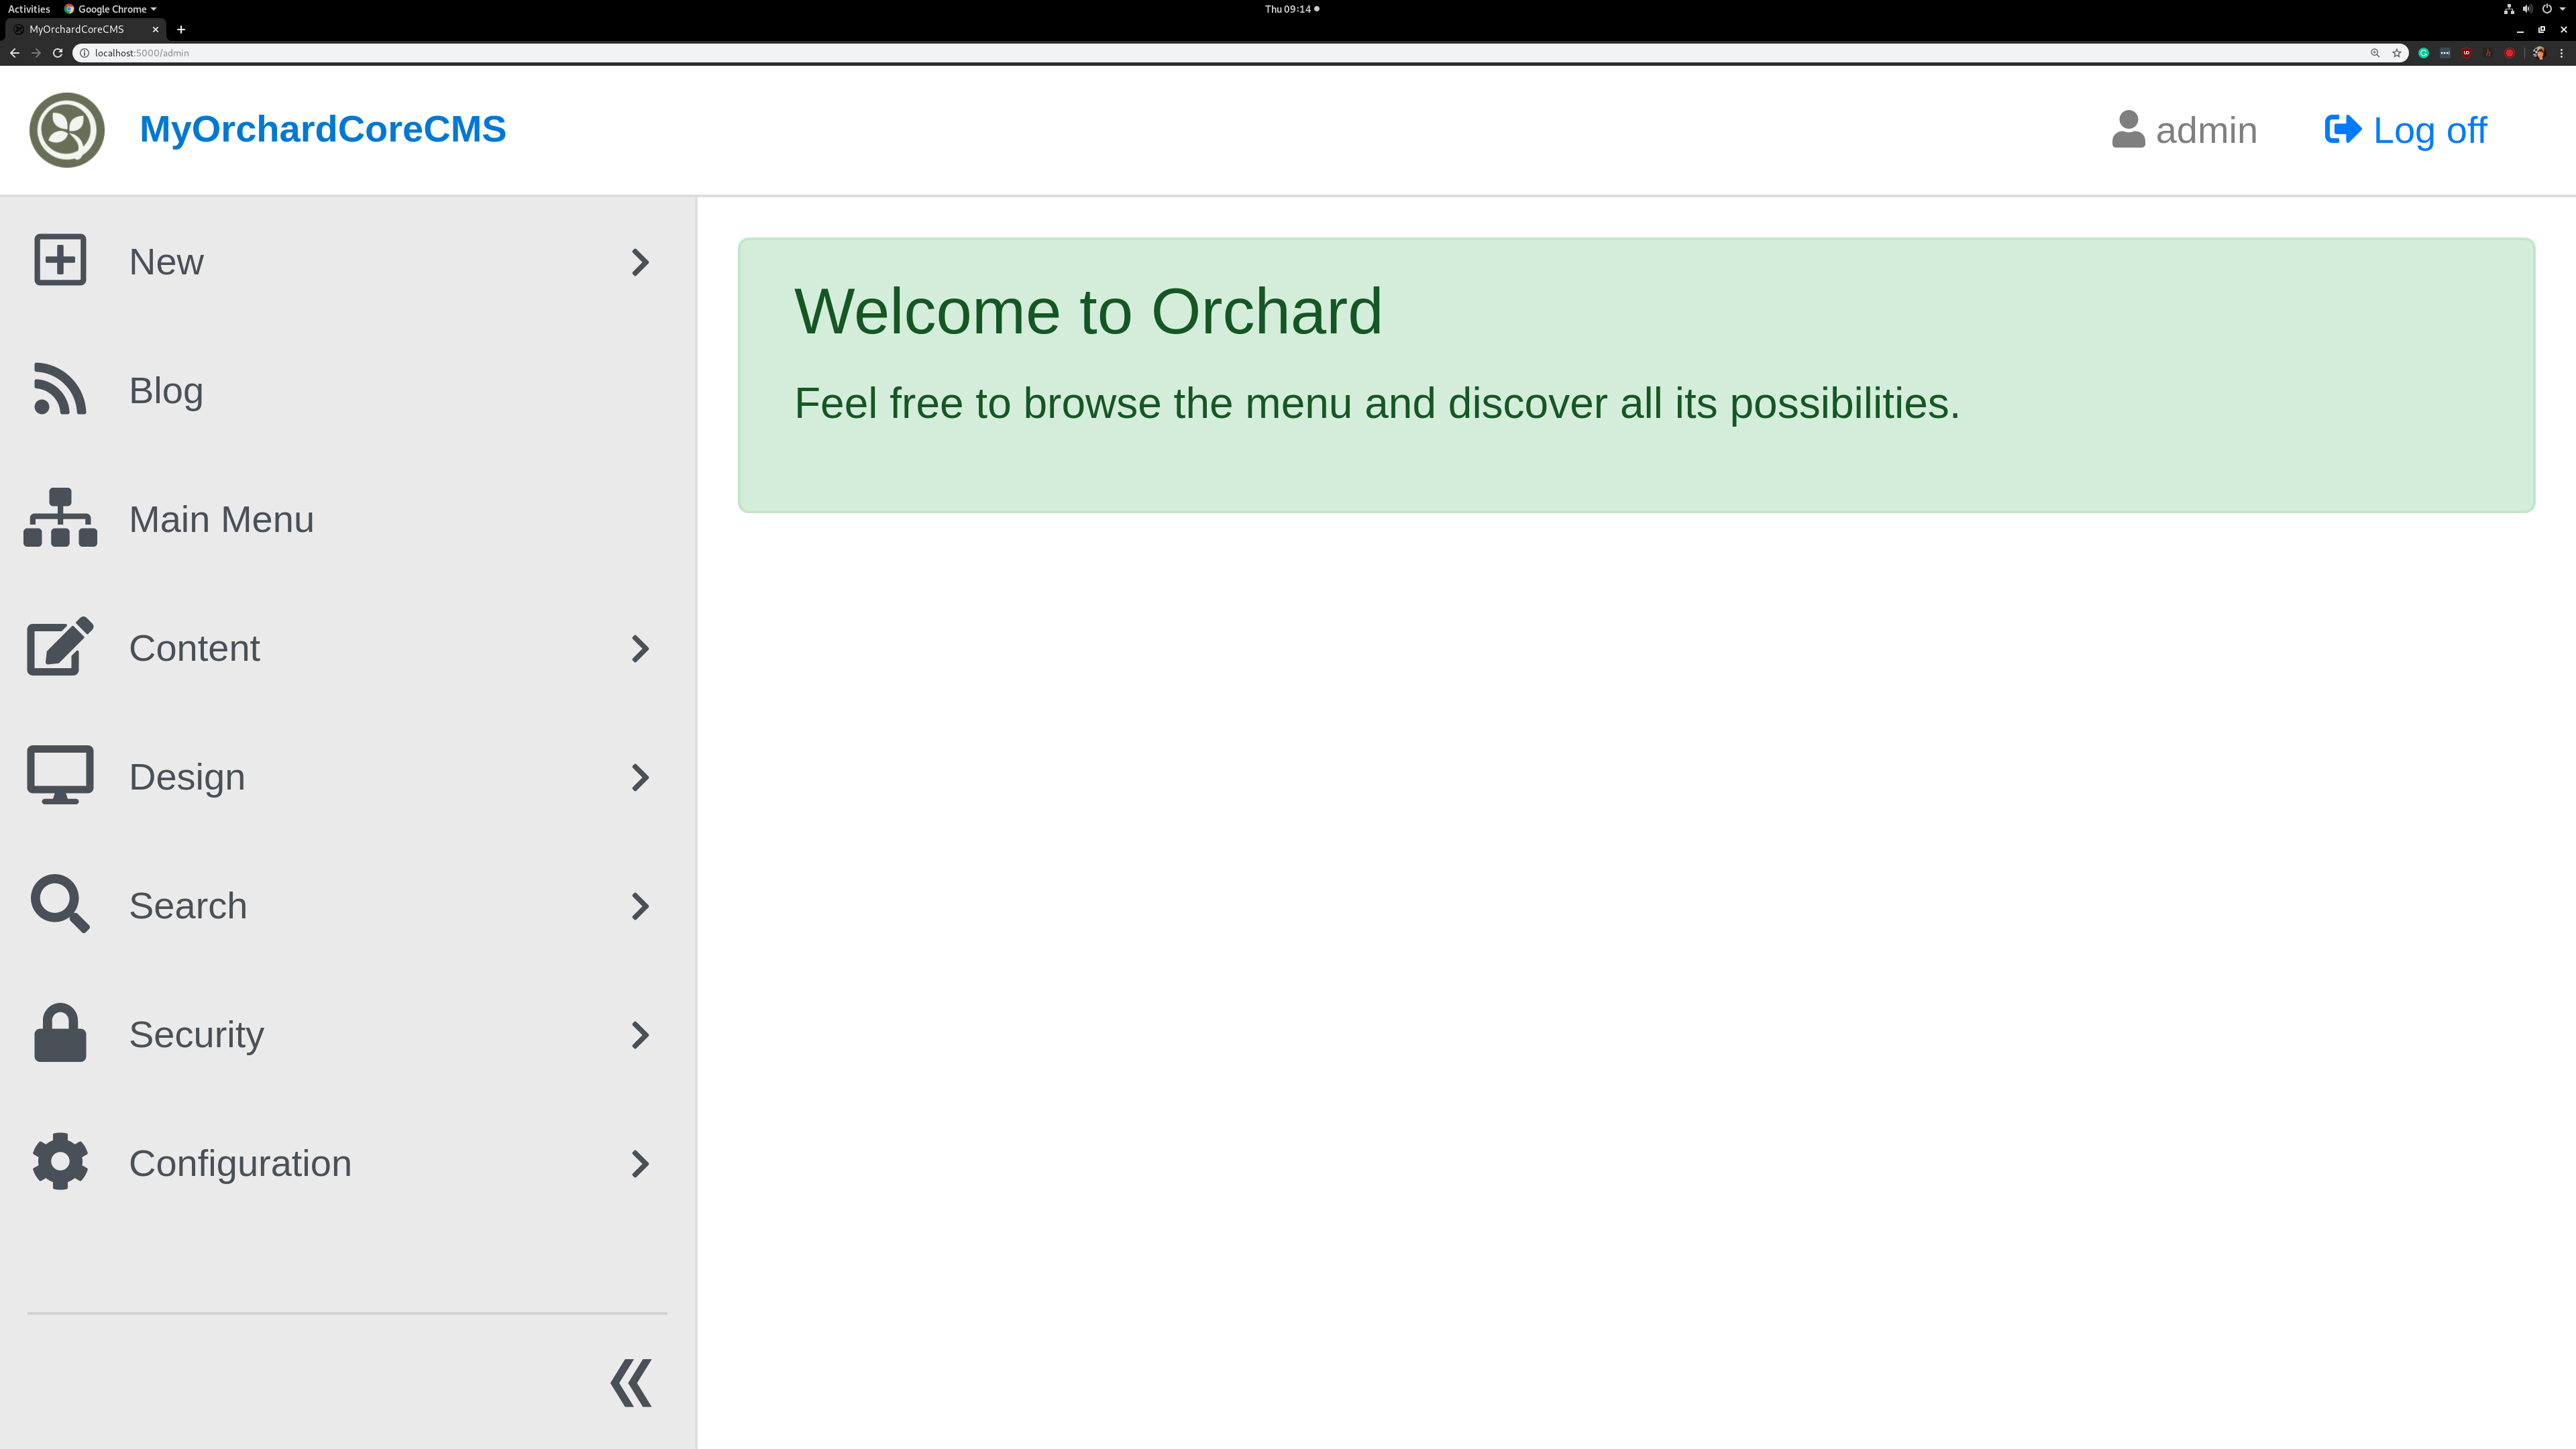 Developing-Orchard-Core-CMS-Applications-Using-Linux-and-VSCode-020